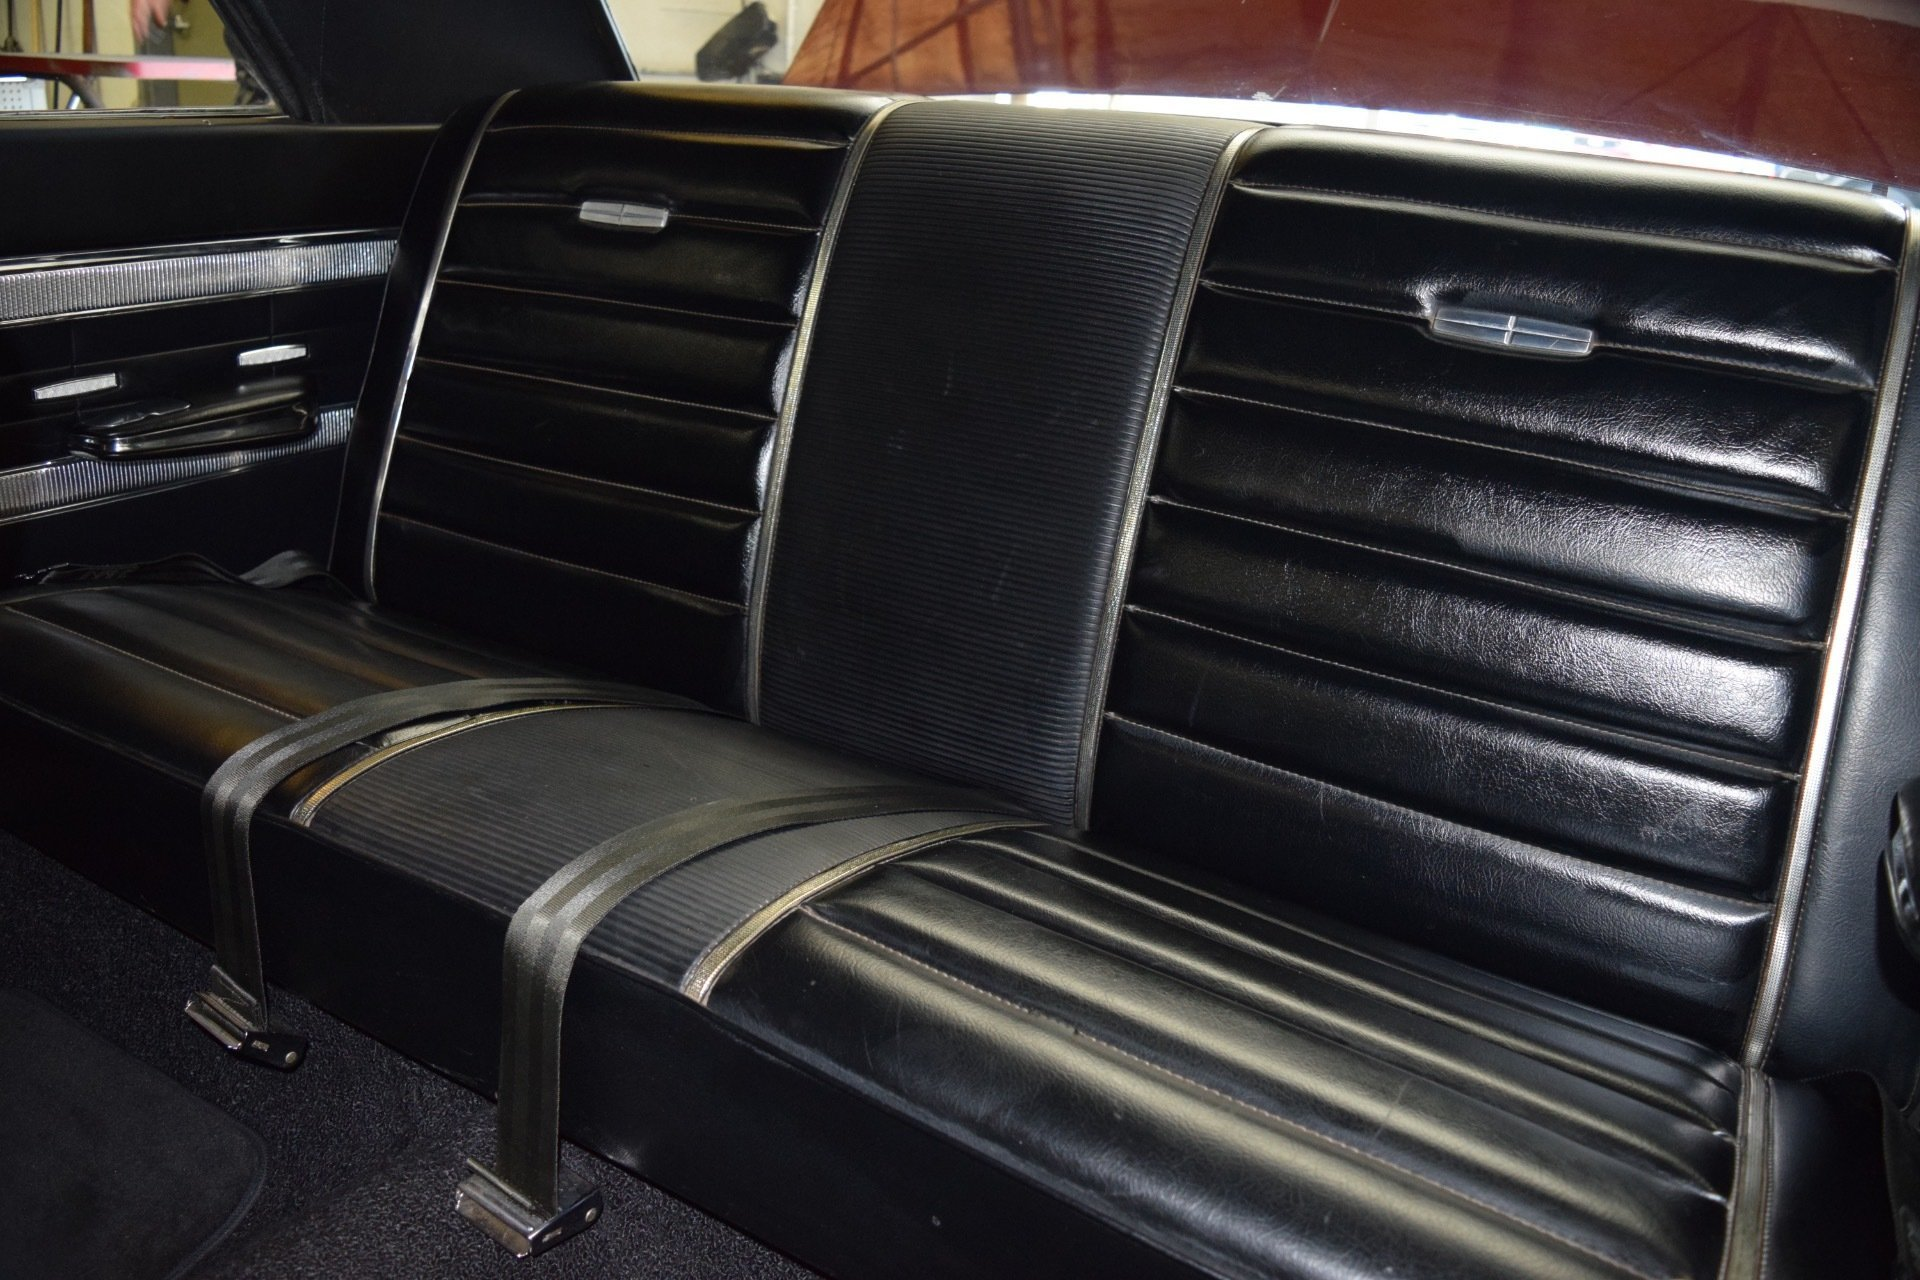 1964 Ford Fairlane Ideal Classic Cars Llc Bucket Seats 758451ee6f44 Low Res